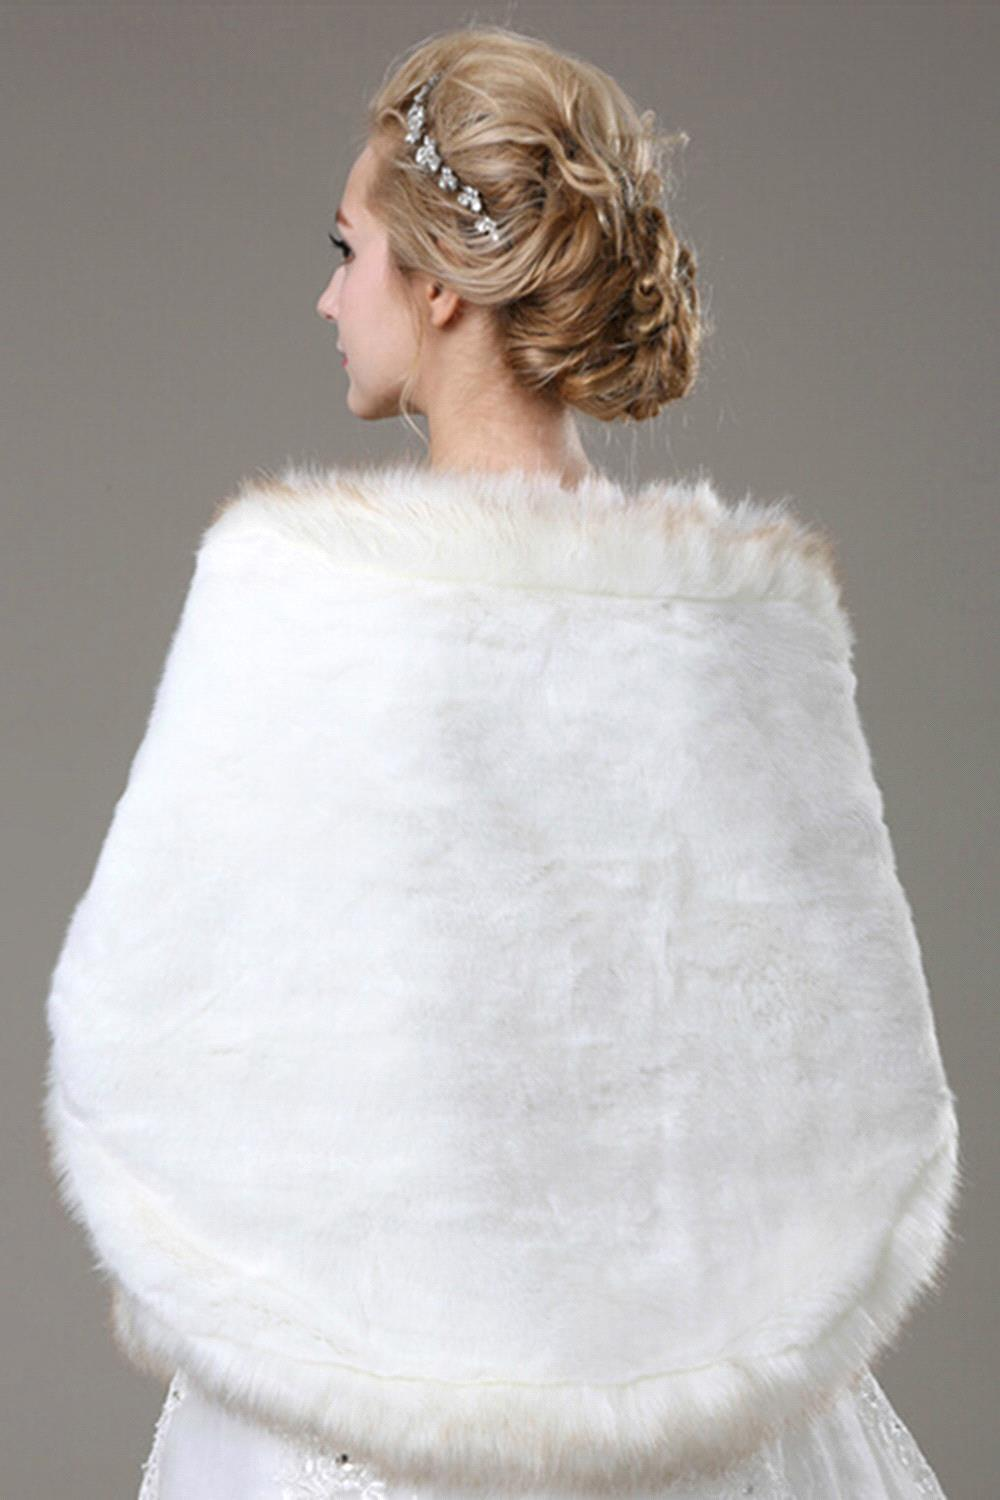 Купить с кэшбэком Mix White Black Burgundy Bridal Wedding Cape Stole Faux Fur Shawl Wrap Cloak Women Bolero Shrug Coat Wedding Accessories